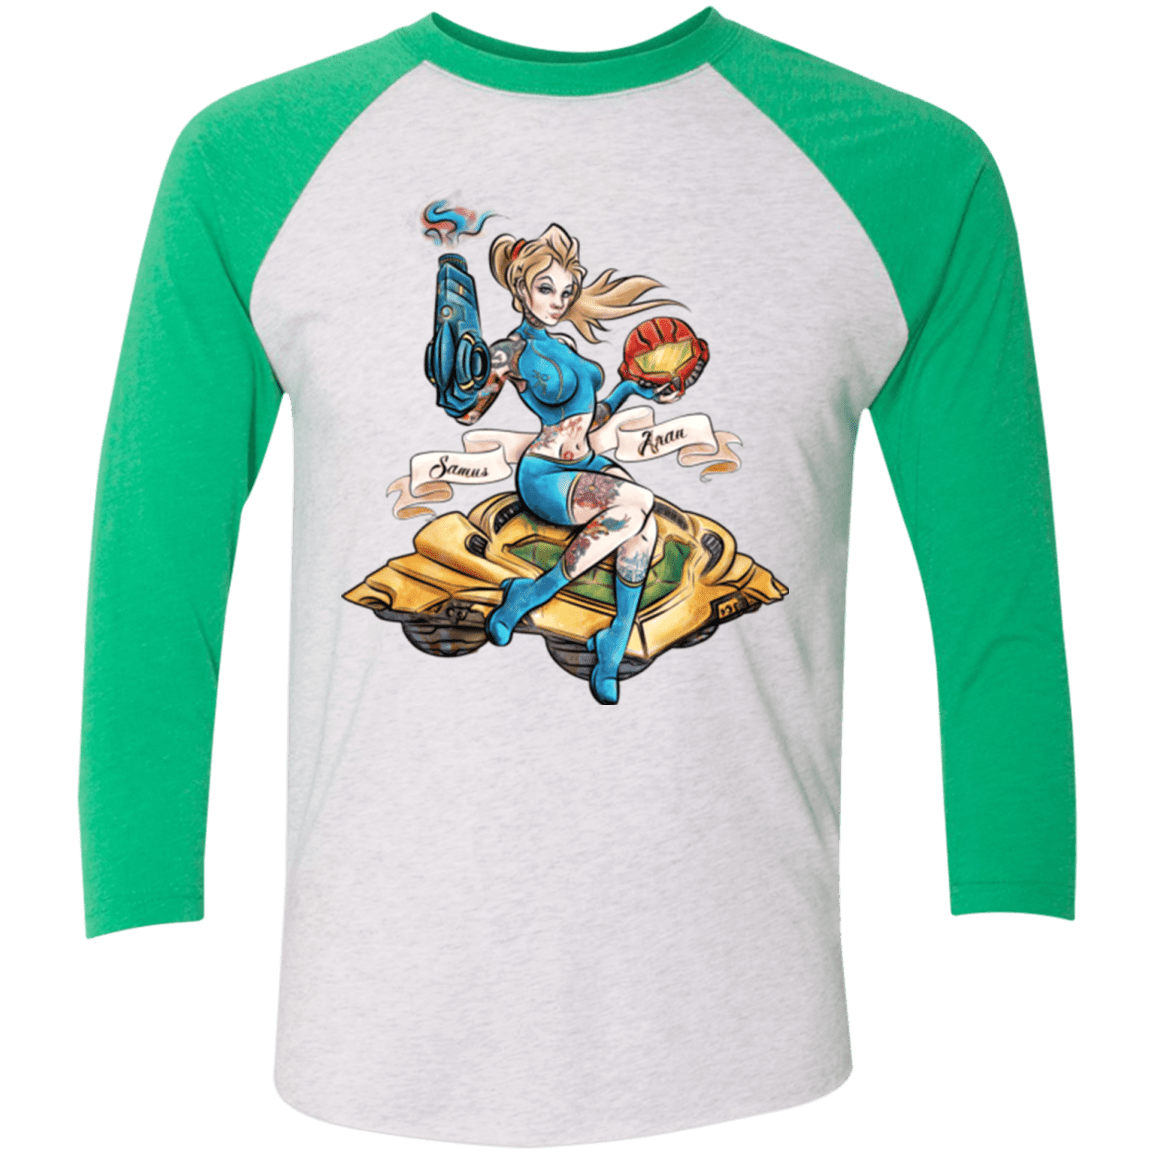 T-Shirts Heather White/Envy / X-Small PINUP SAMUS Triblend 3/4 Sleeve